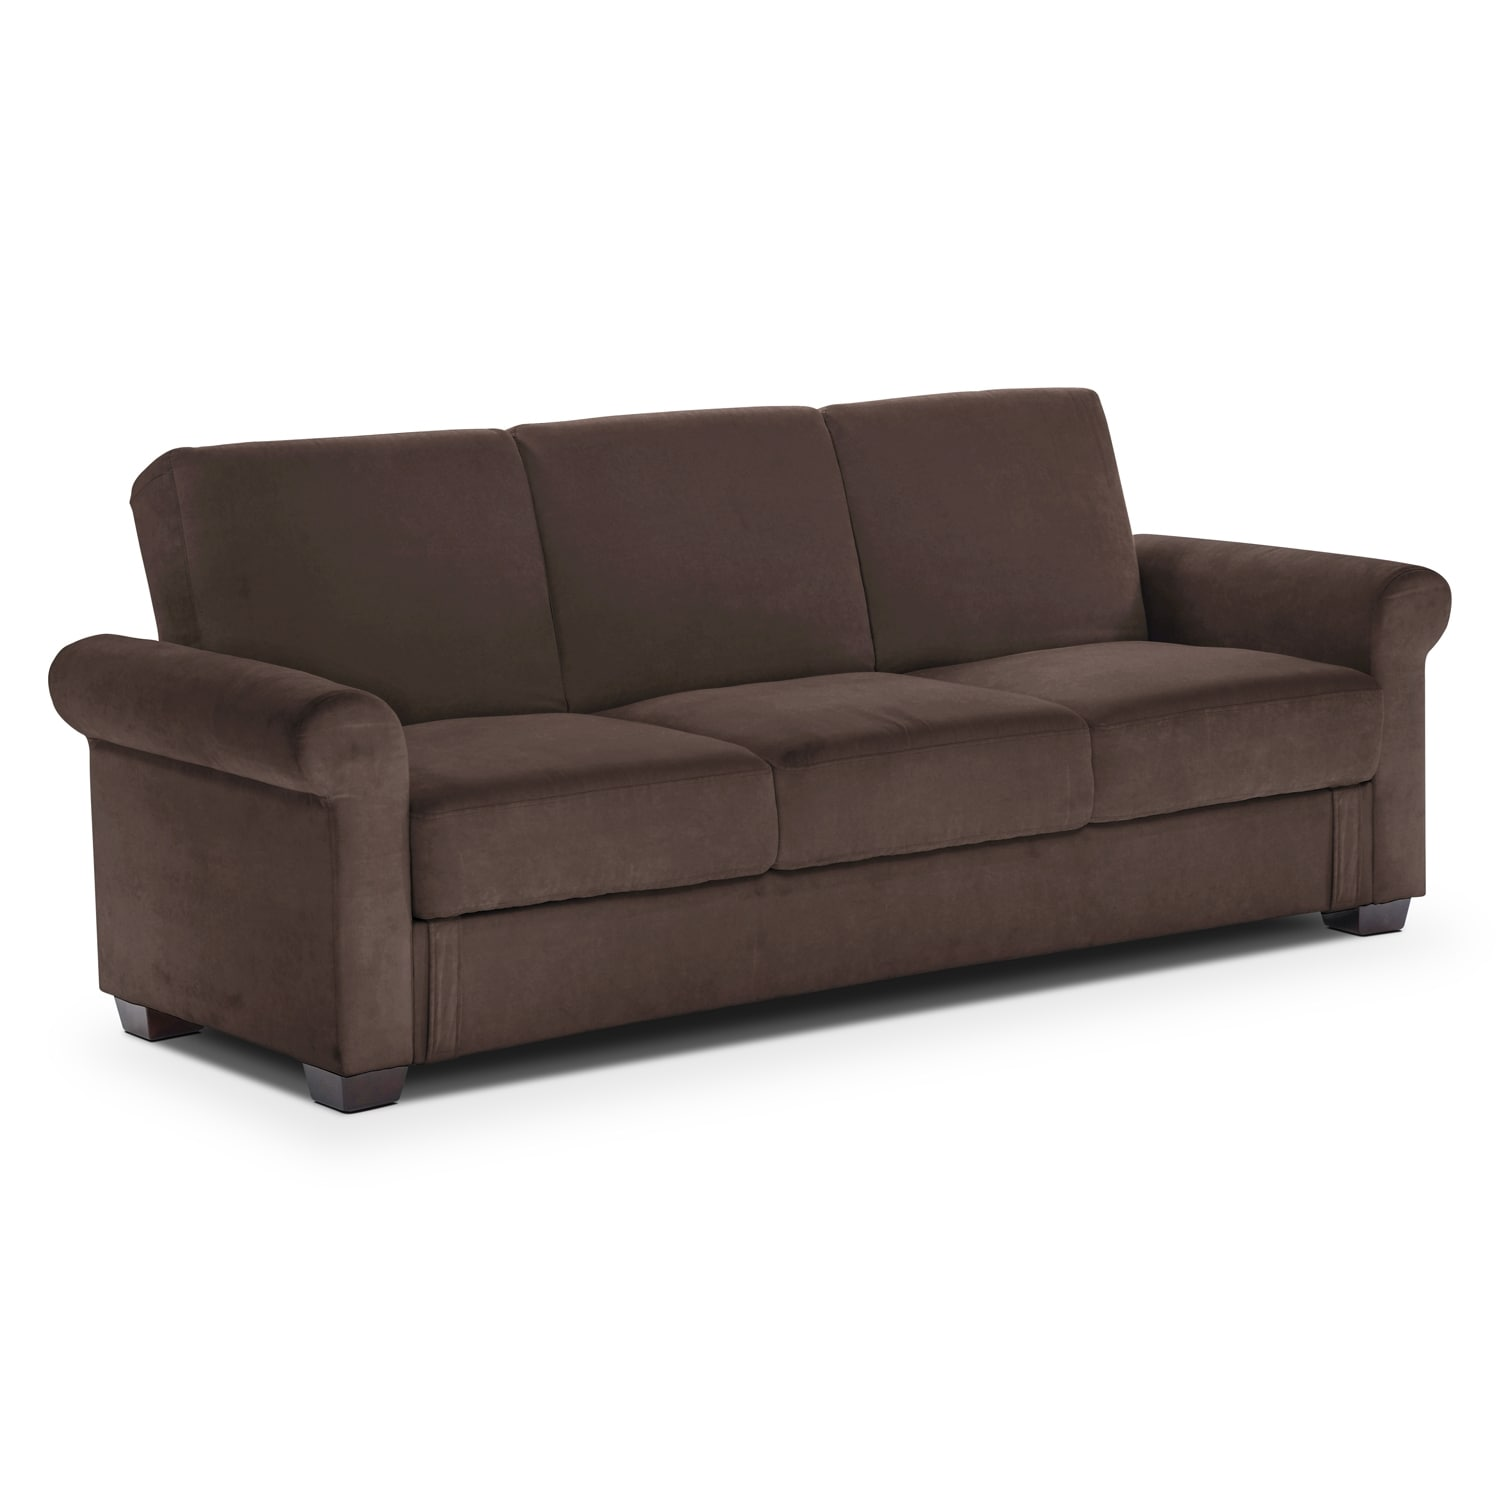 Thomas Upholstery Futon Sofa Bed With Storage Value City Furniture